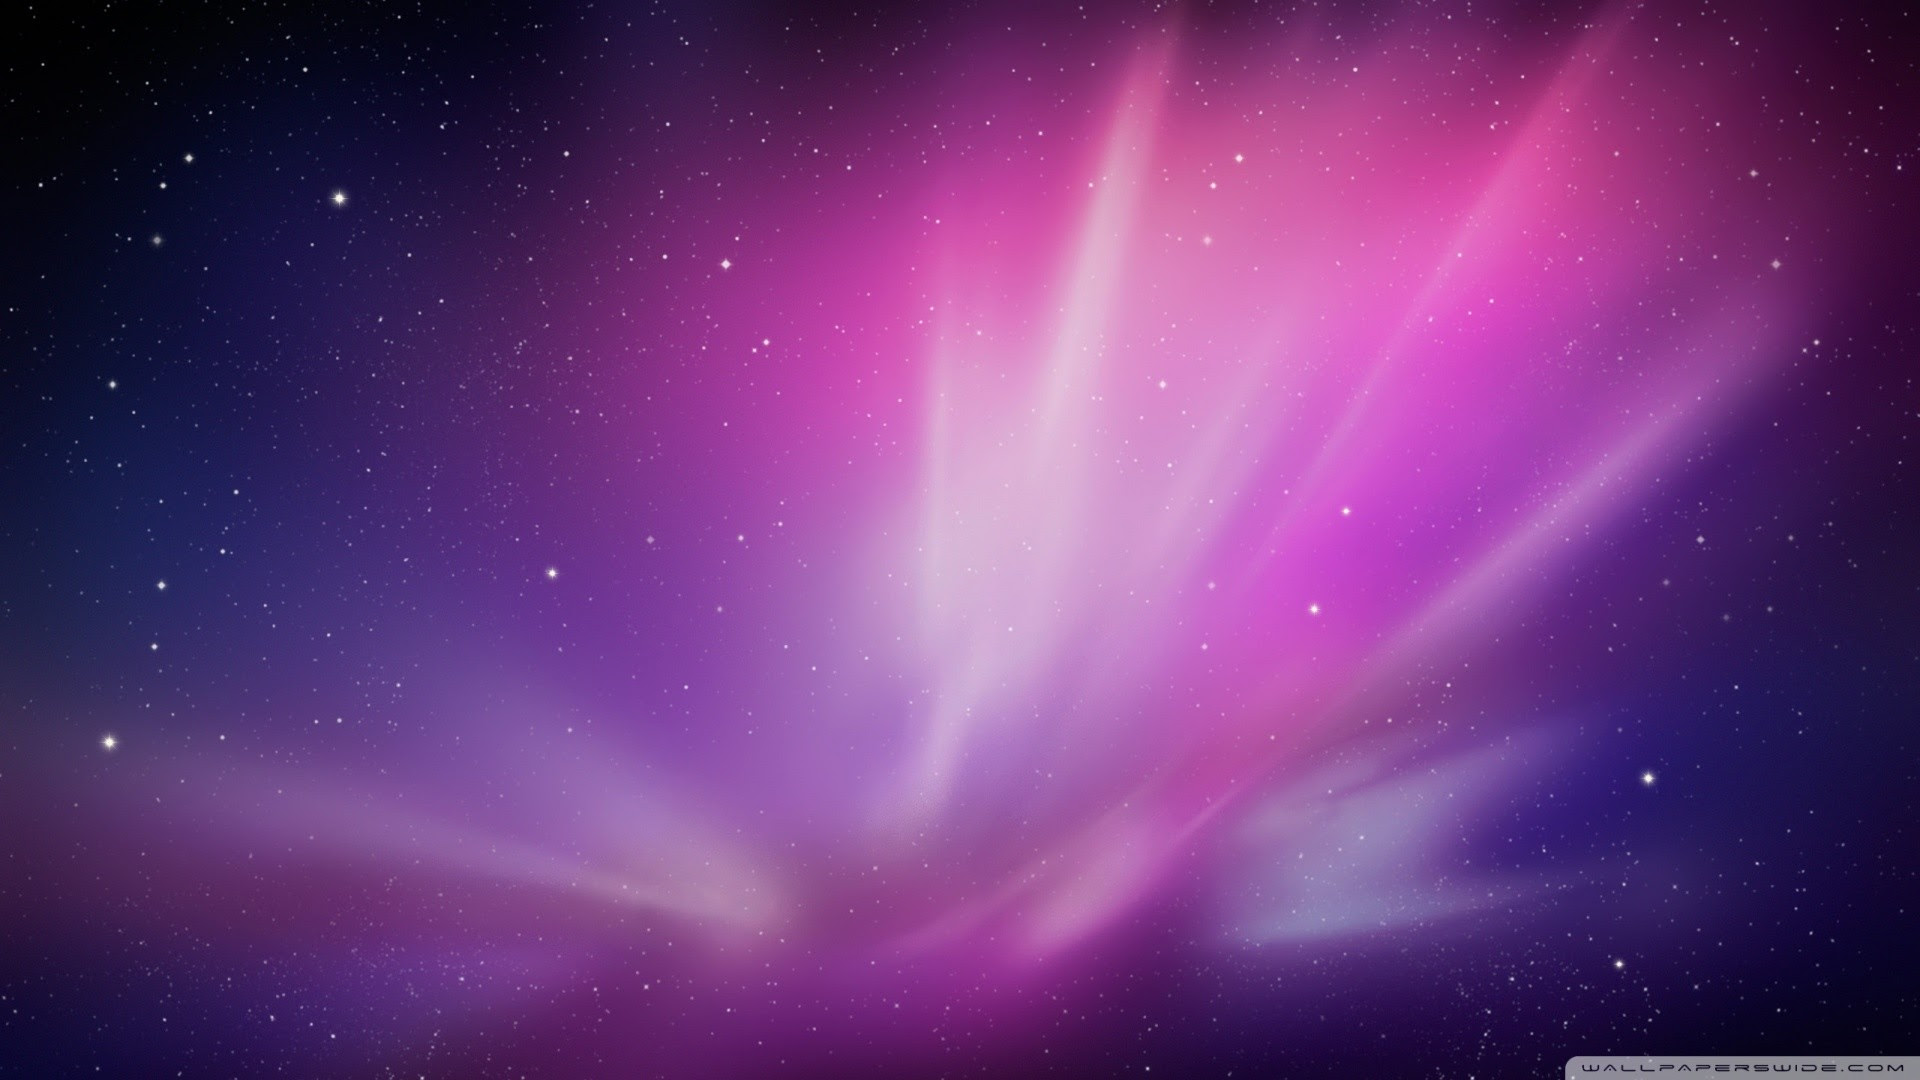 Cool HD Wallpapers for Mac (63+ images)